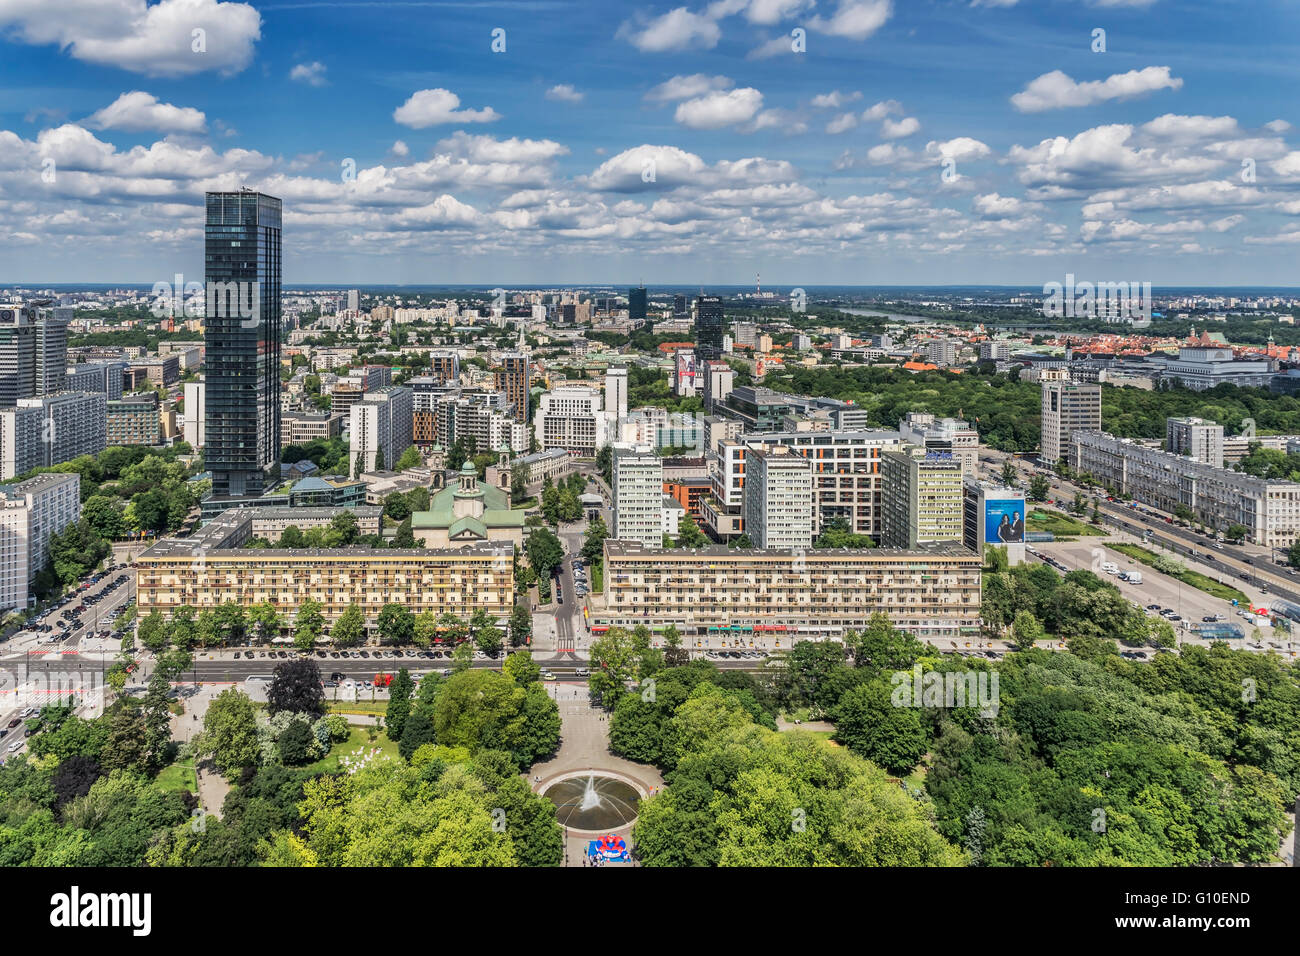 View from the Palace of Culture and Science (Palac Kultury i Nauki) over the Polish capital Warsaw, Masovian, Poland, - Stock Image